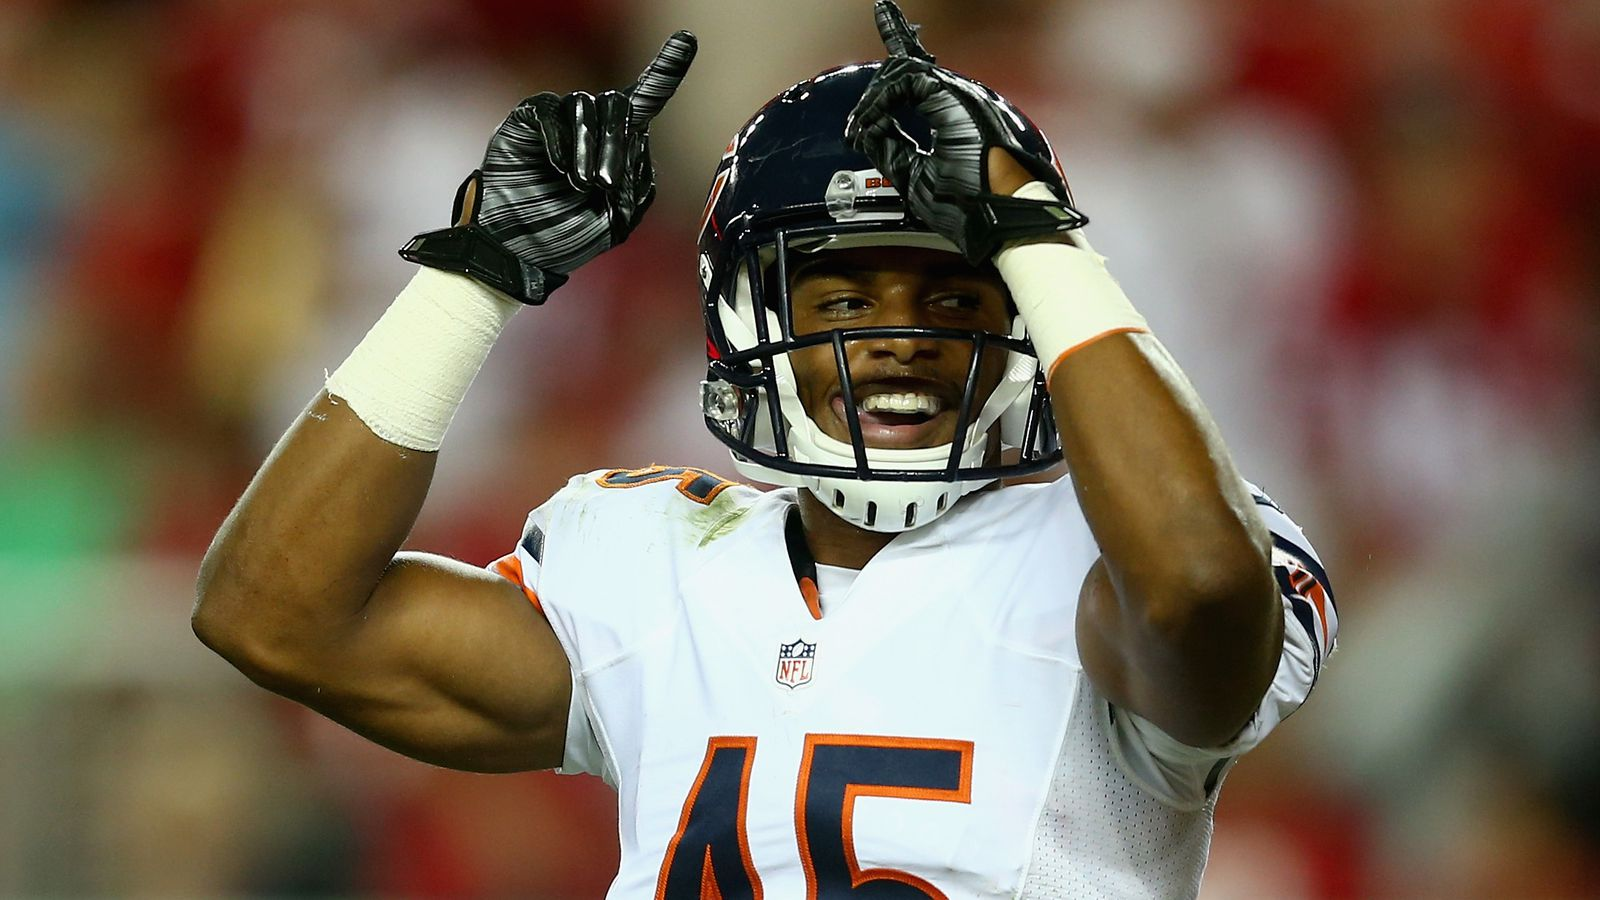 Get the latest Chicago Bears news scores stats standings rumors and more from ESPN